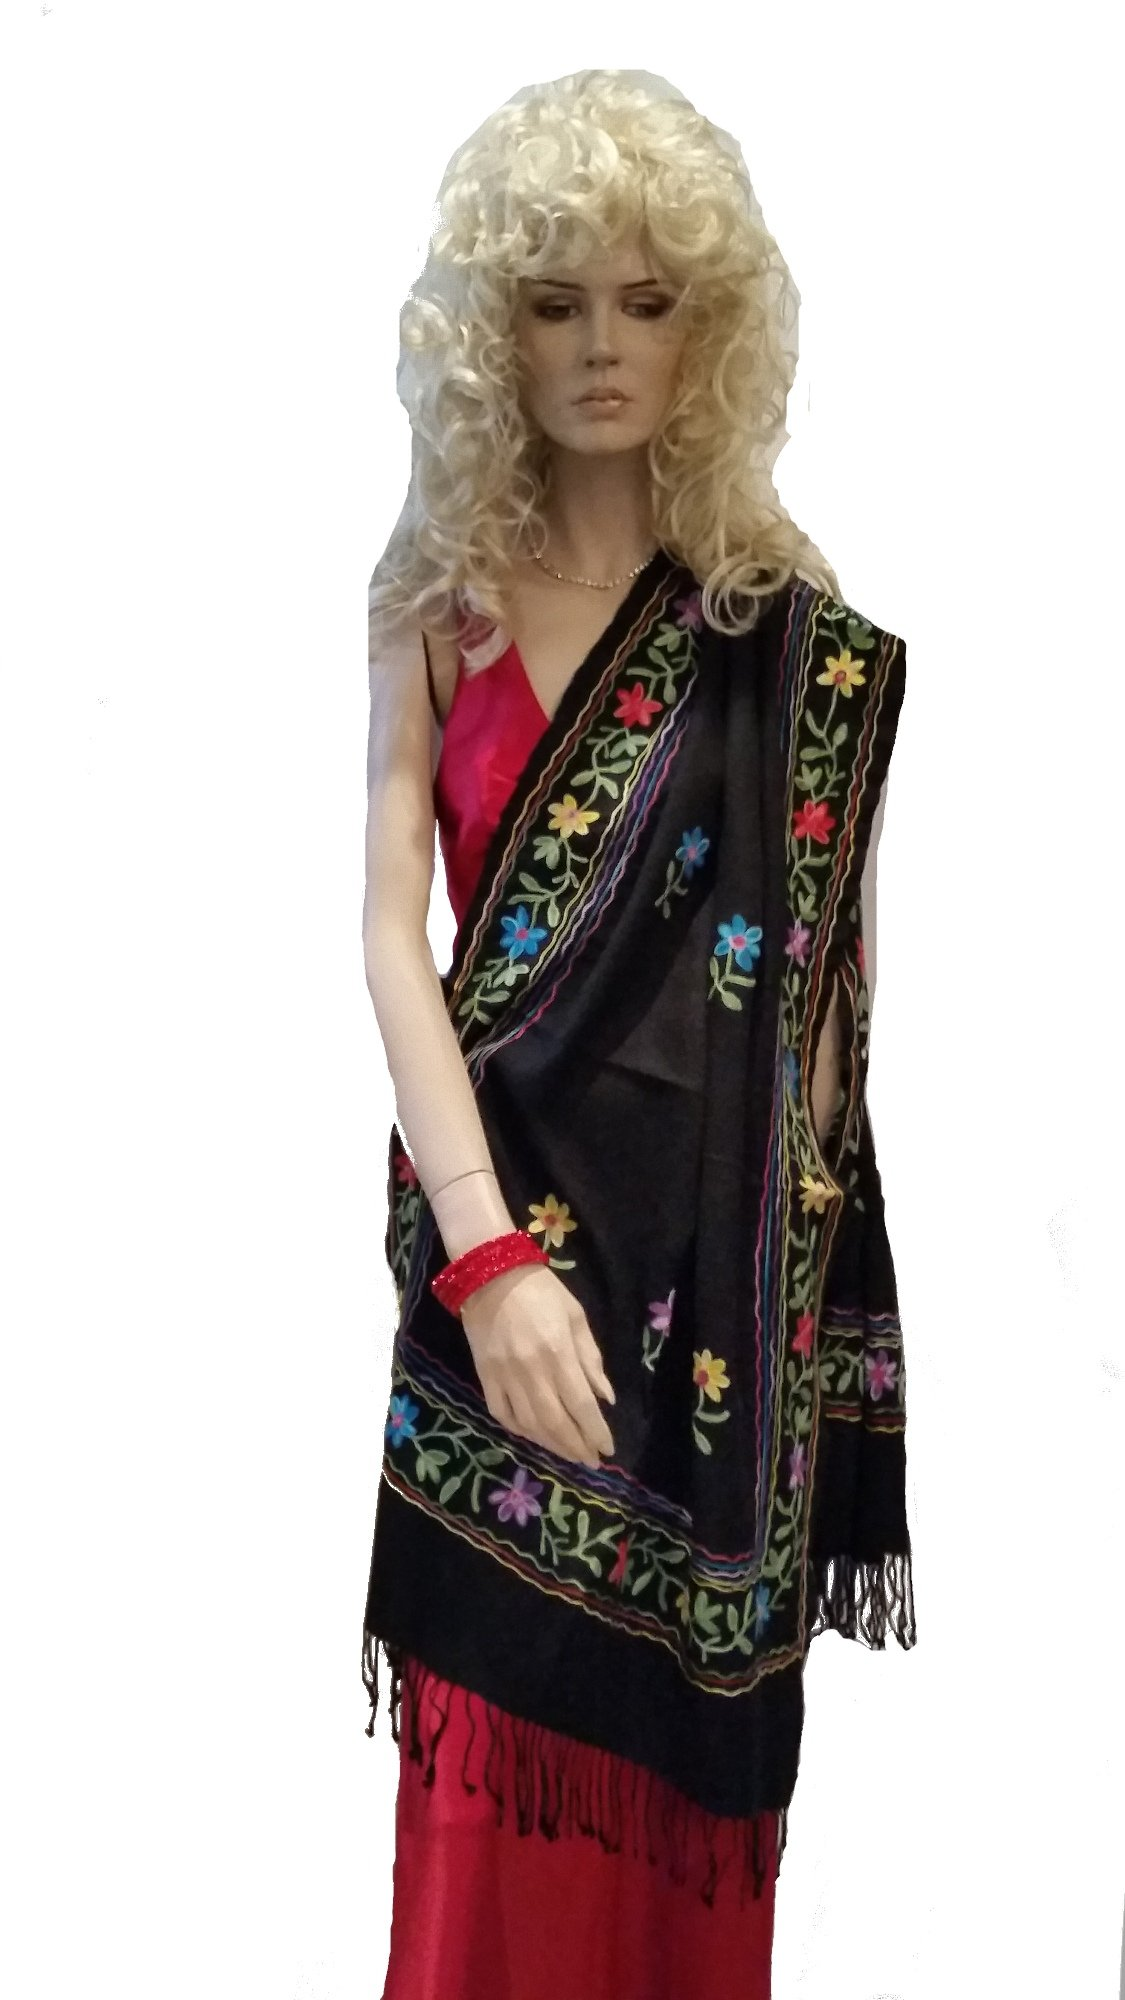 SHAWL/ SCARF- CASHMERE PASHMINA WRAP WITH ALL OVER CREWEL EMBROIDERY